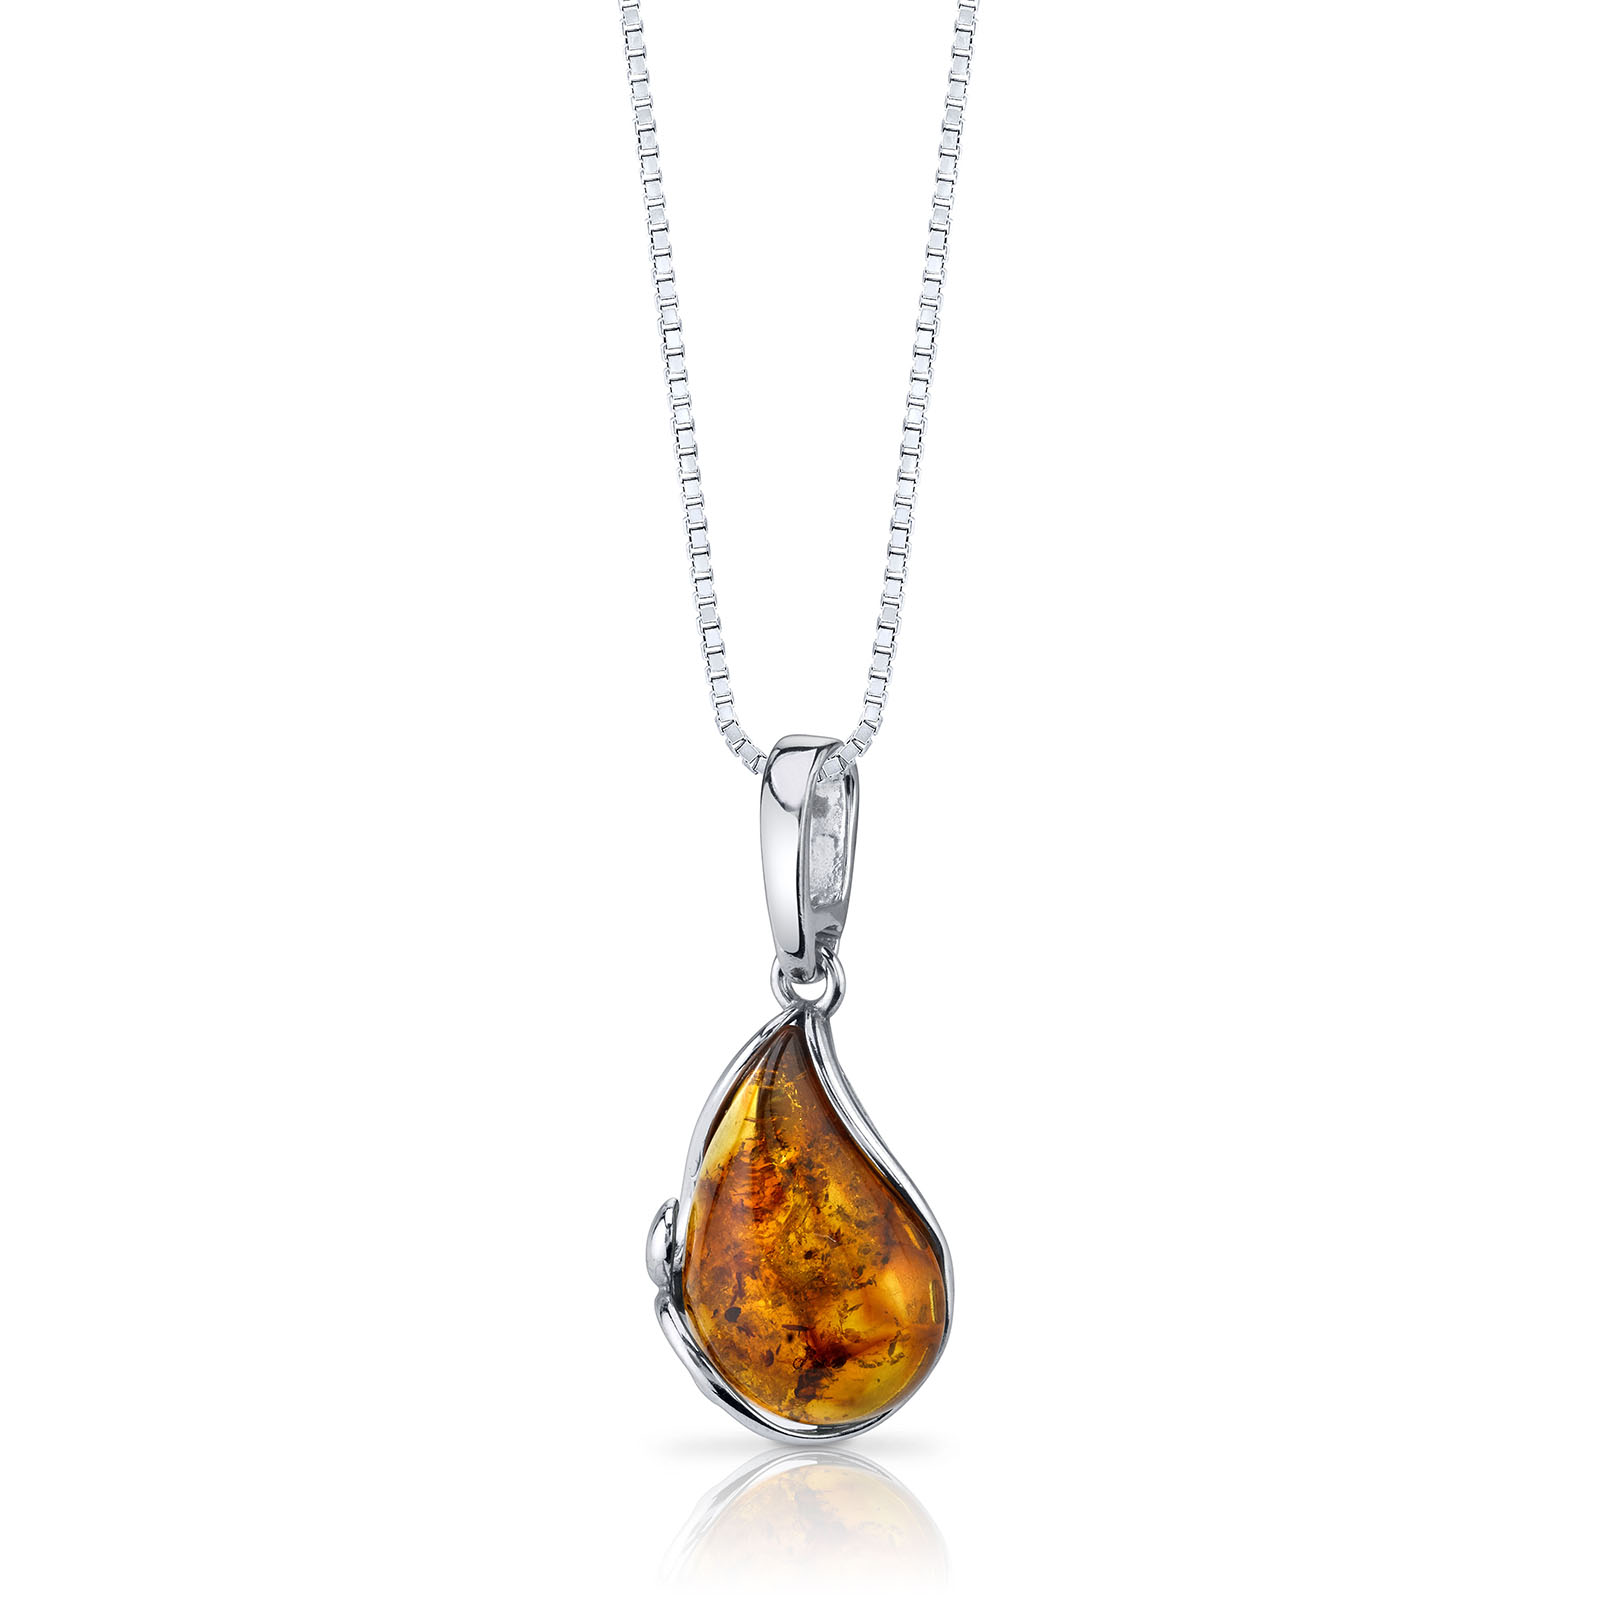 Amber Baltic Teardrop Cognac Colour Pendant Necklace in Sterling Silver